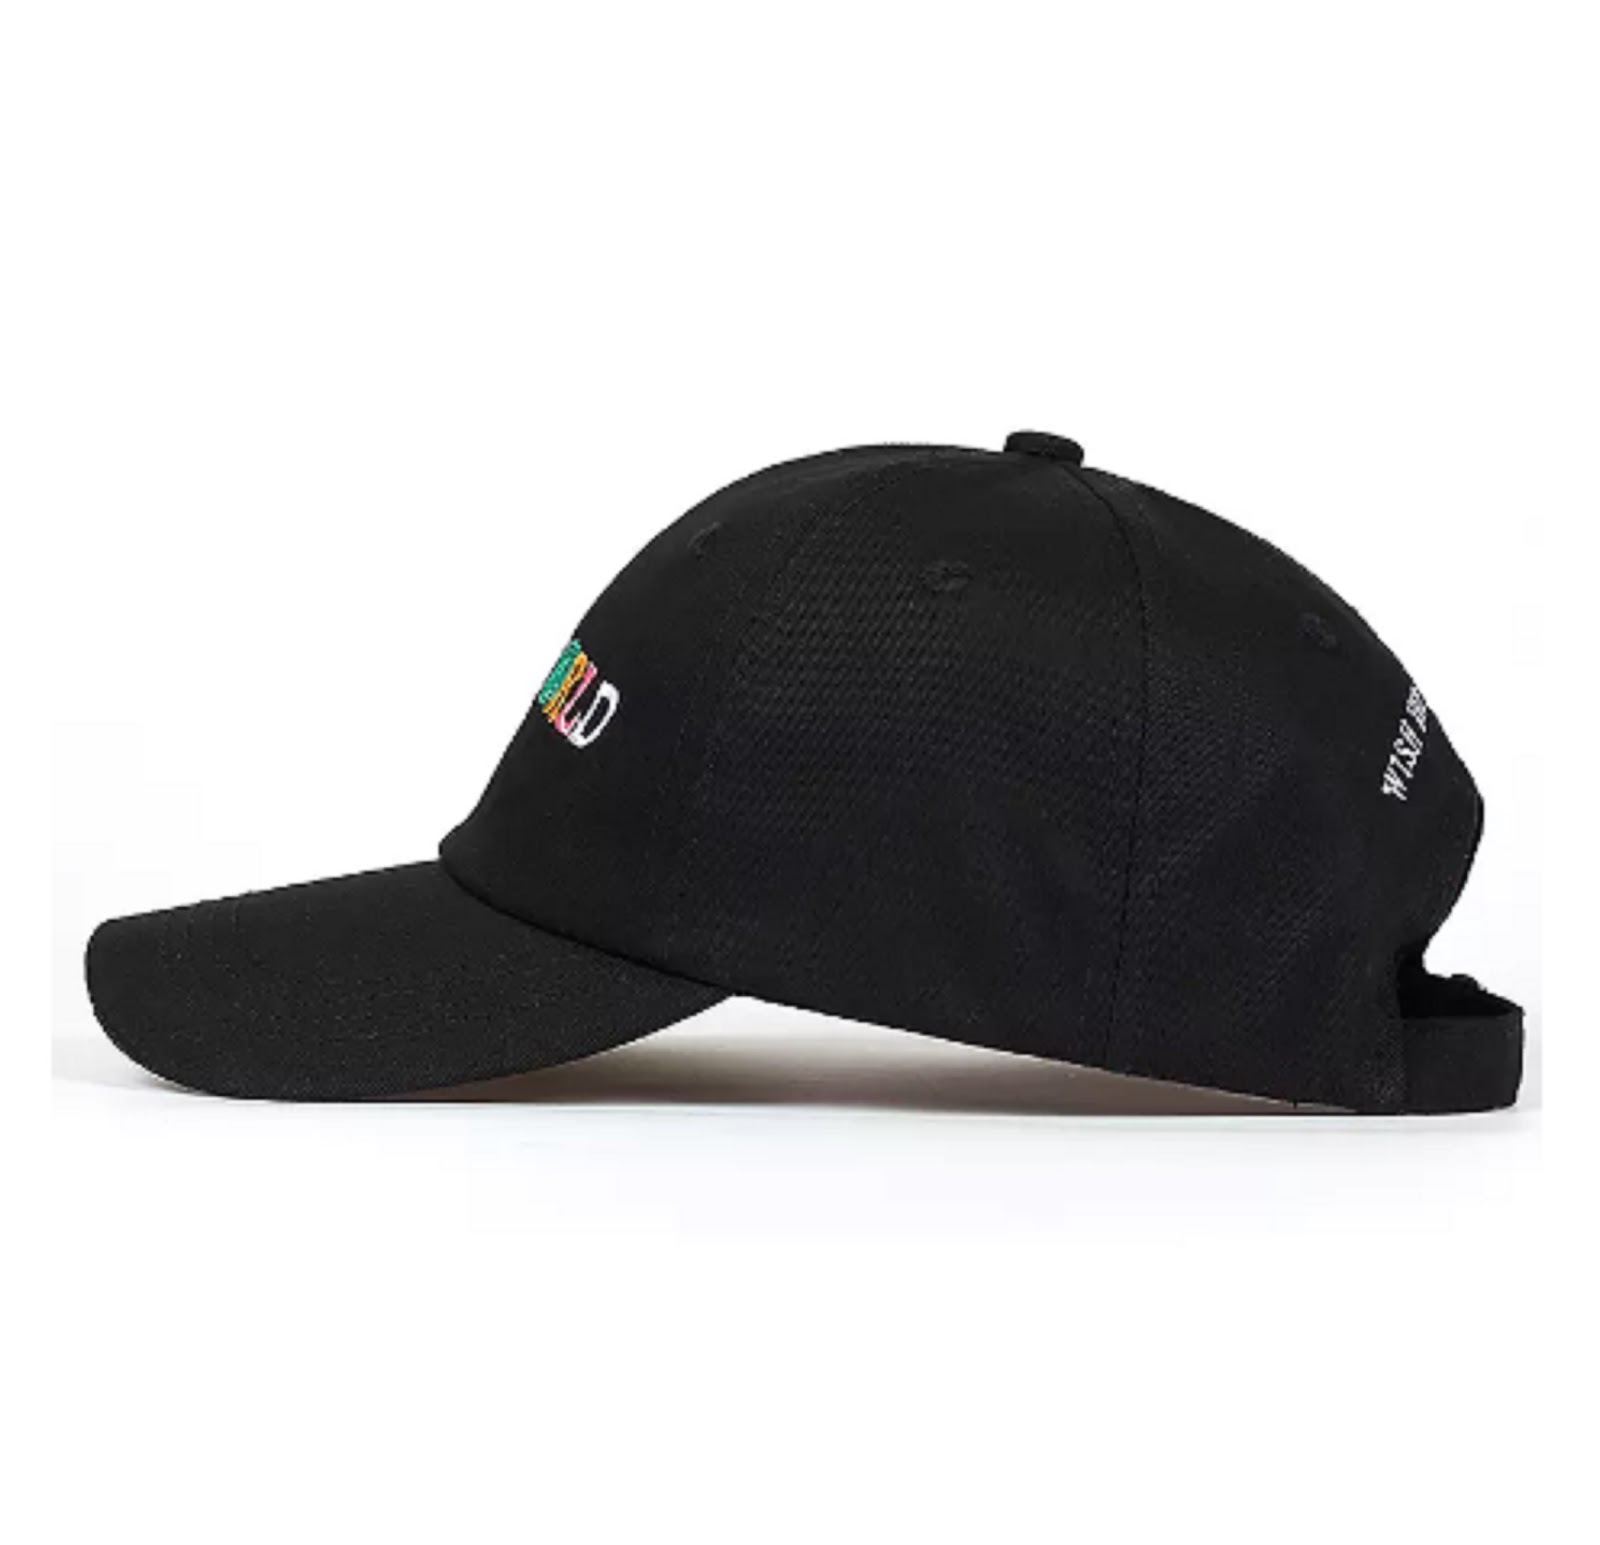 Product Name   ASTROWORLD Mens Hats Hot Sale Latest Travis Scotts Cap  Embroidery Letters Adjustable Cotton Baseball Caps Free Shipping Streetwears df0c9d3c8baa